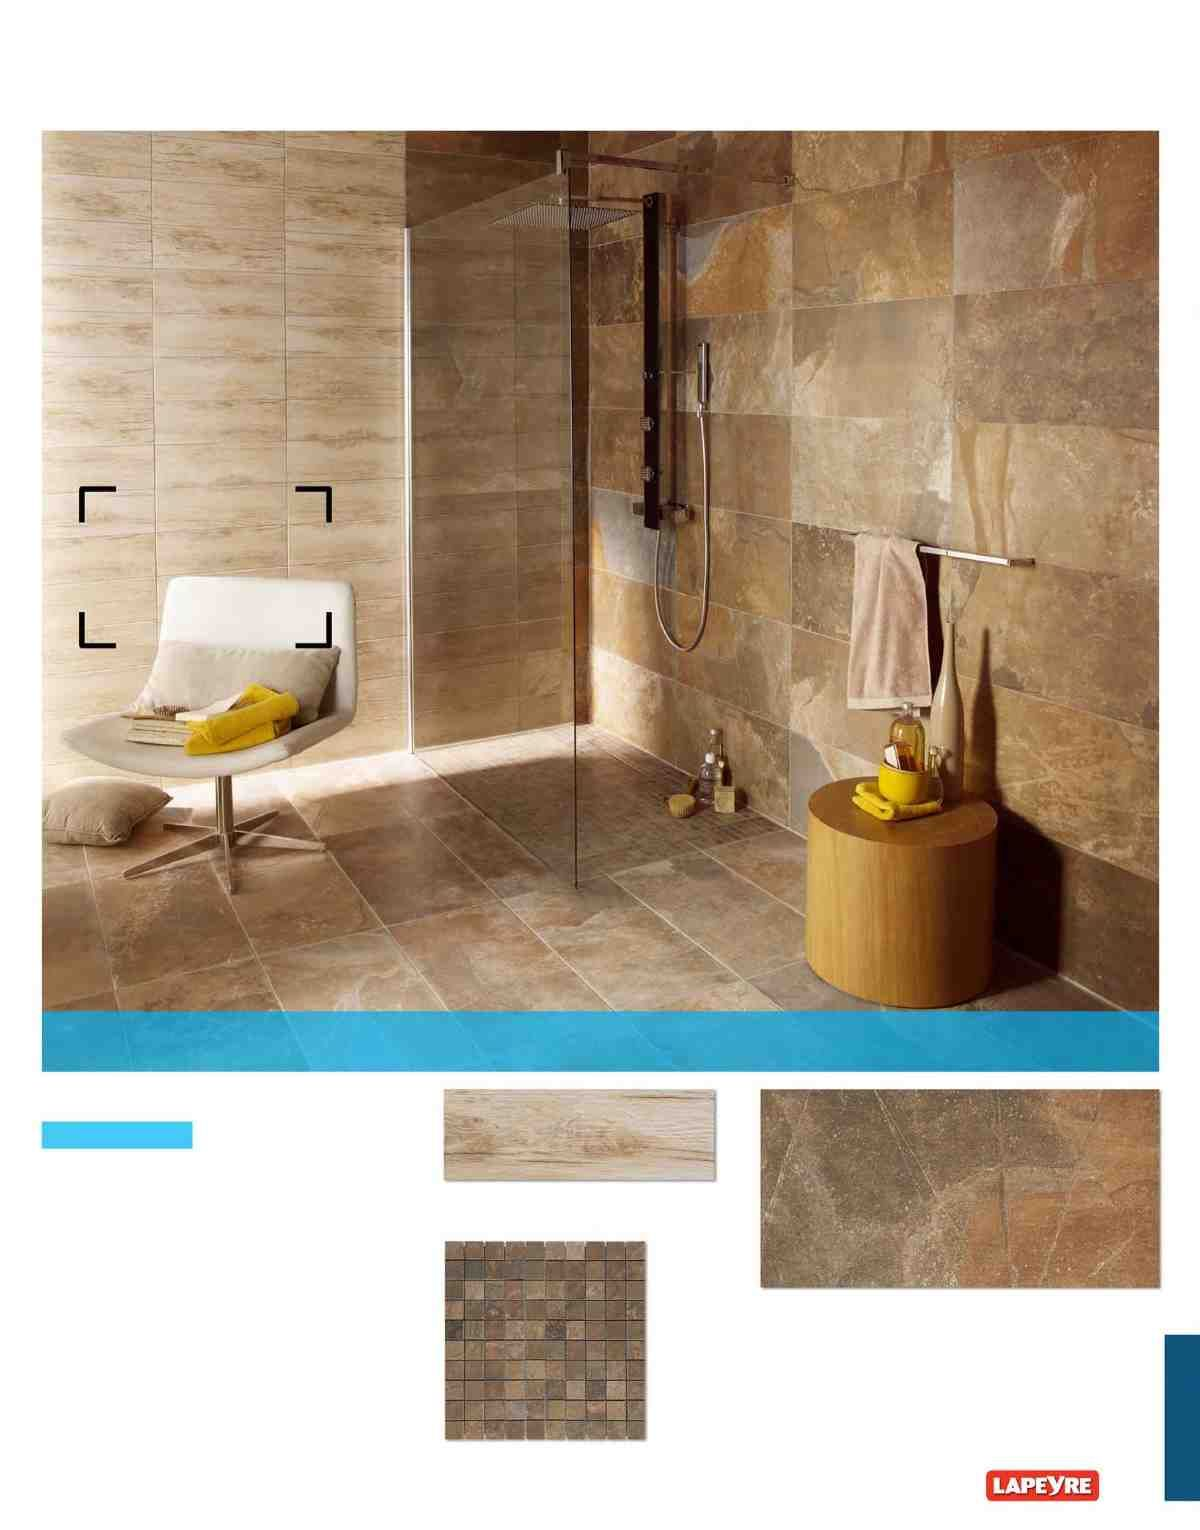 catalogue lapeyre carrelages salle de bains 2014 page 257 salle de bain pinterest. Black Bedroom Furniture Sets. Home Design Ideas